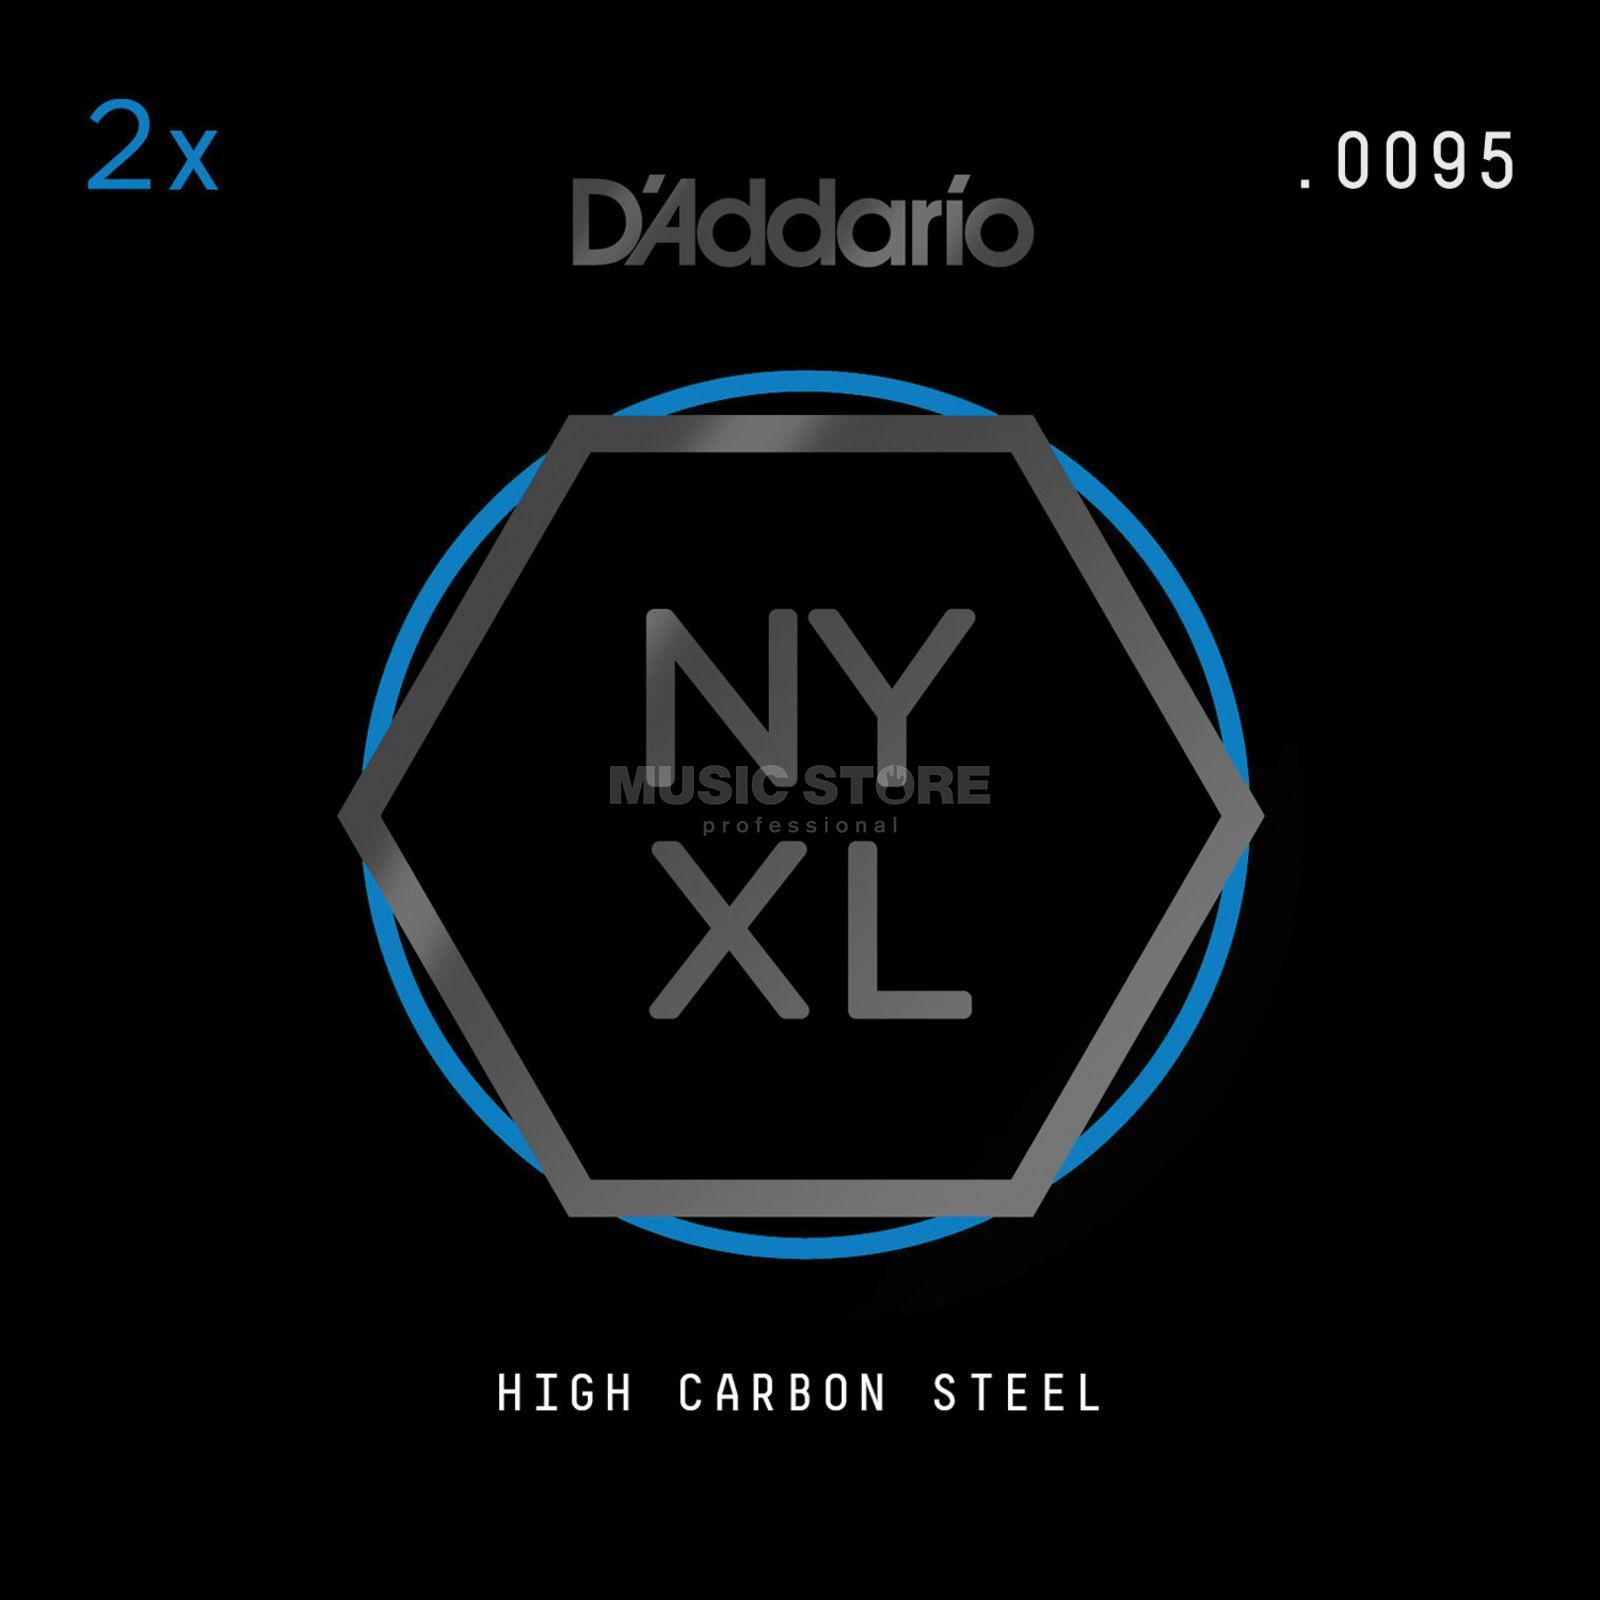 D'Addario NYPL0095 Plain Single String 2-Pack - High Carbon Steel Image du produit